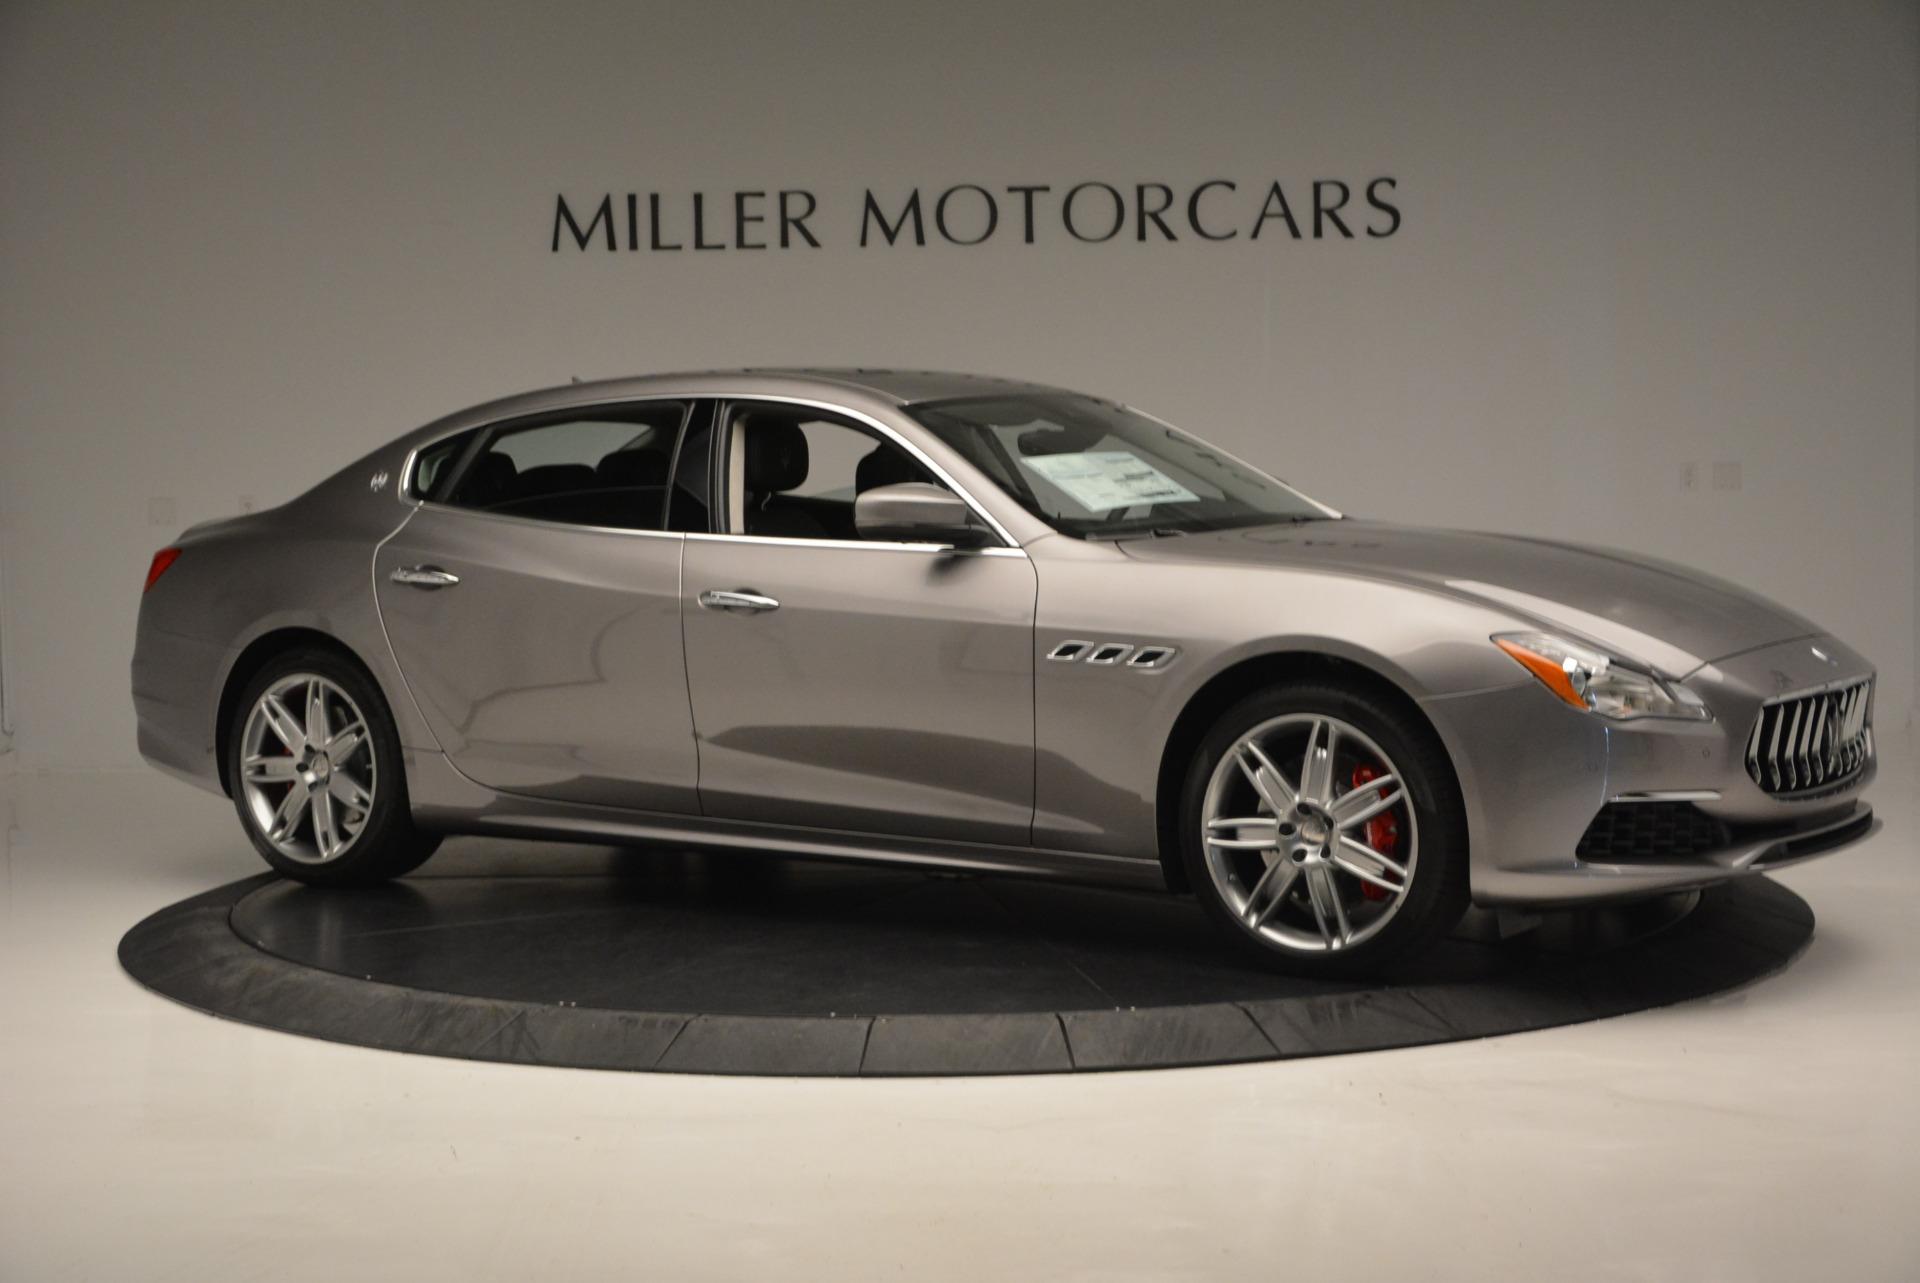 New 2017 Maserati Quattroporte S Q4 GranLusso For Sale In Westport, CT 611_p10